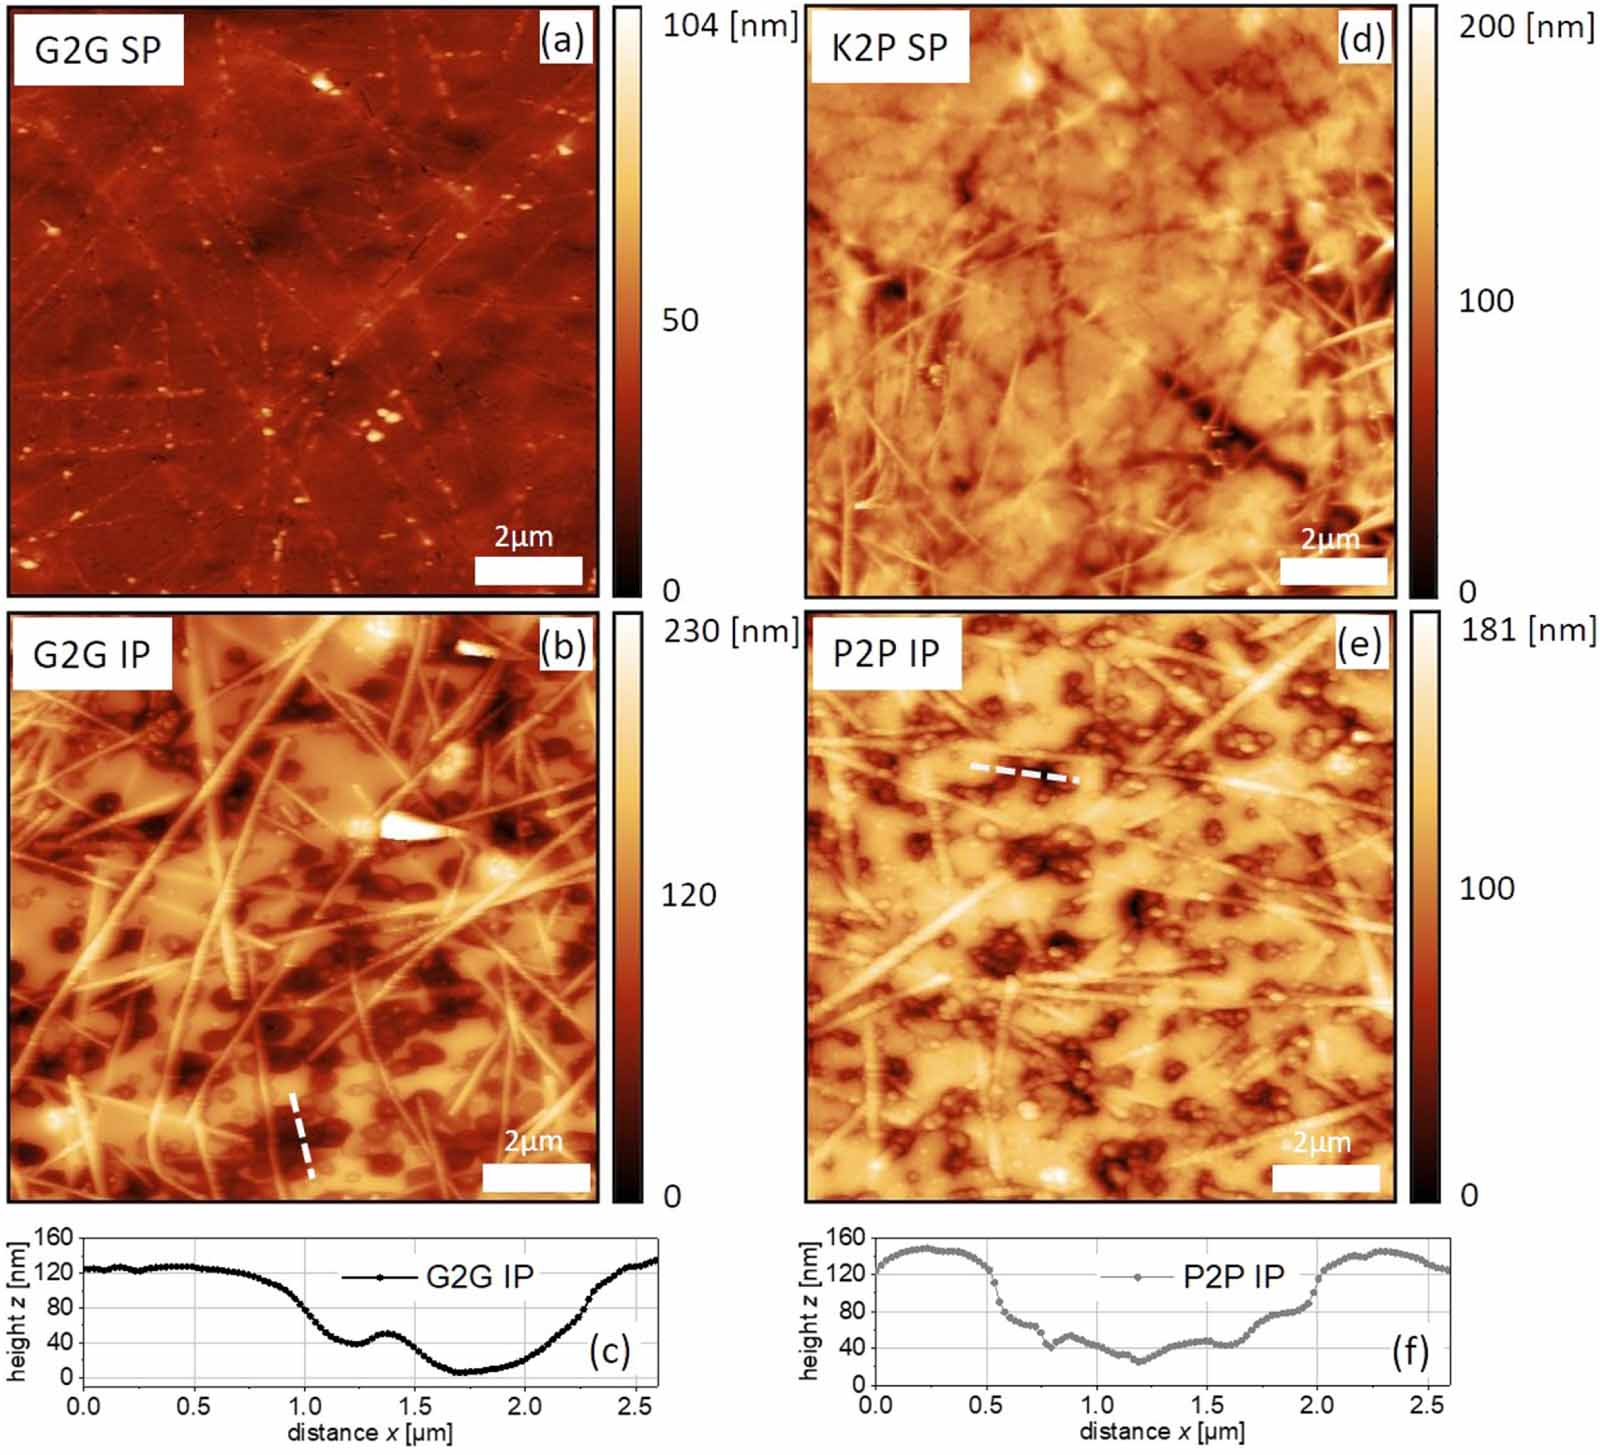 "Figure 5. from ""Gentle plasma process for embedded silver-nanowire flexible transparent electrodes on temperature-sensitive polymer substrates "" by Lukas Kinner et al.: The sample surfaces were characterized with atomic force microscopy (AFM) in tapping mode, using high-resolution NANOSENSORS™ SuperSharpSilicon™ SSS-NCHR AFM probes. AFM images of the AgNW electrodes for: (a) G2G SP, (b) G2G IP, (c) height profile for the dashed line marked in (b), (d) K2P SP, (e) P2P IP, (f) height profile for the dashed line marked in (e)."